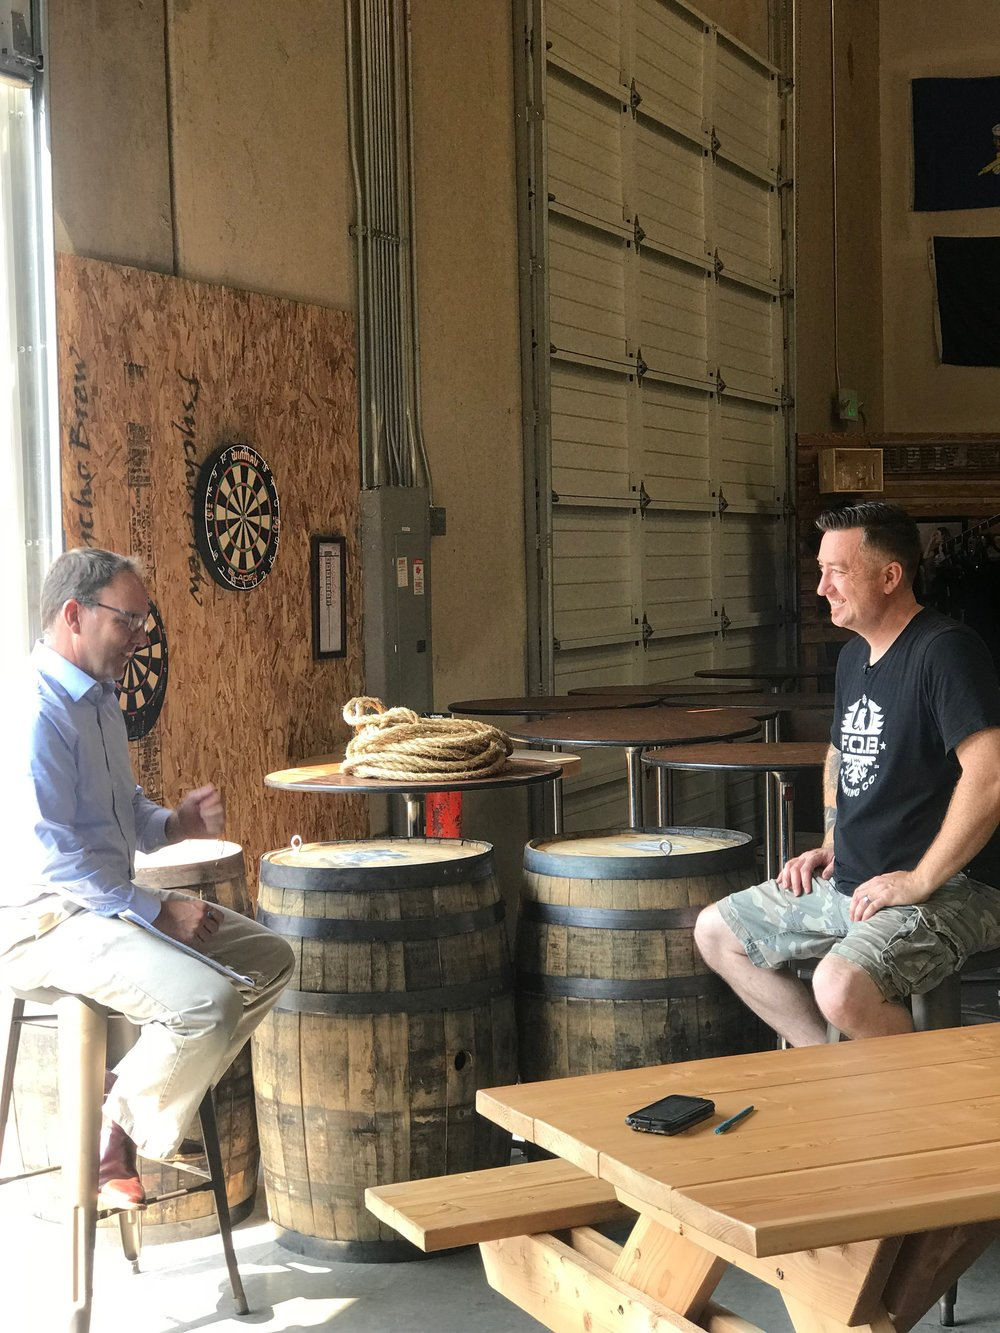 King 5 News - Veteran's brewery in South Sound benefits fellow veteransAn Army veteran employing other veterans at his South Sound brewery hopes to open breweries at every military base in the U.S.Author:Drew MikkelsenPublished:3:41 PM PDT July 30, 2018